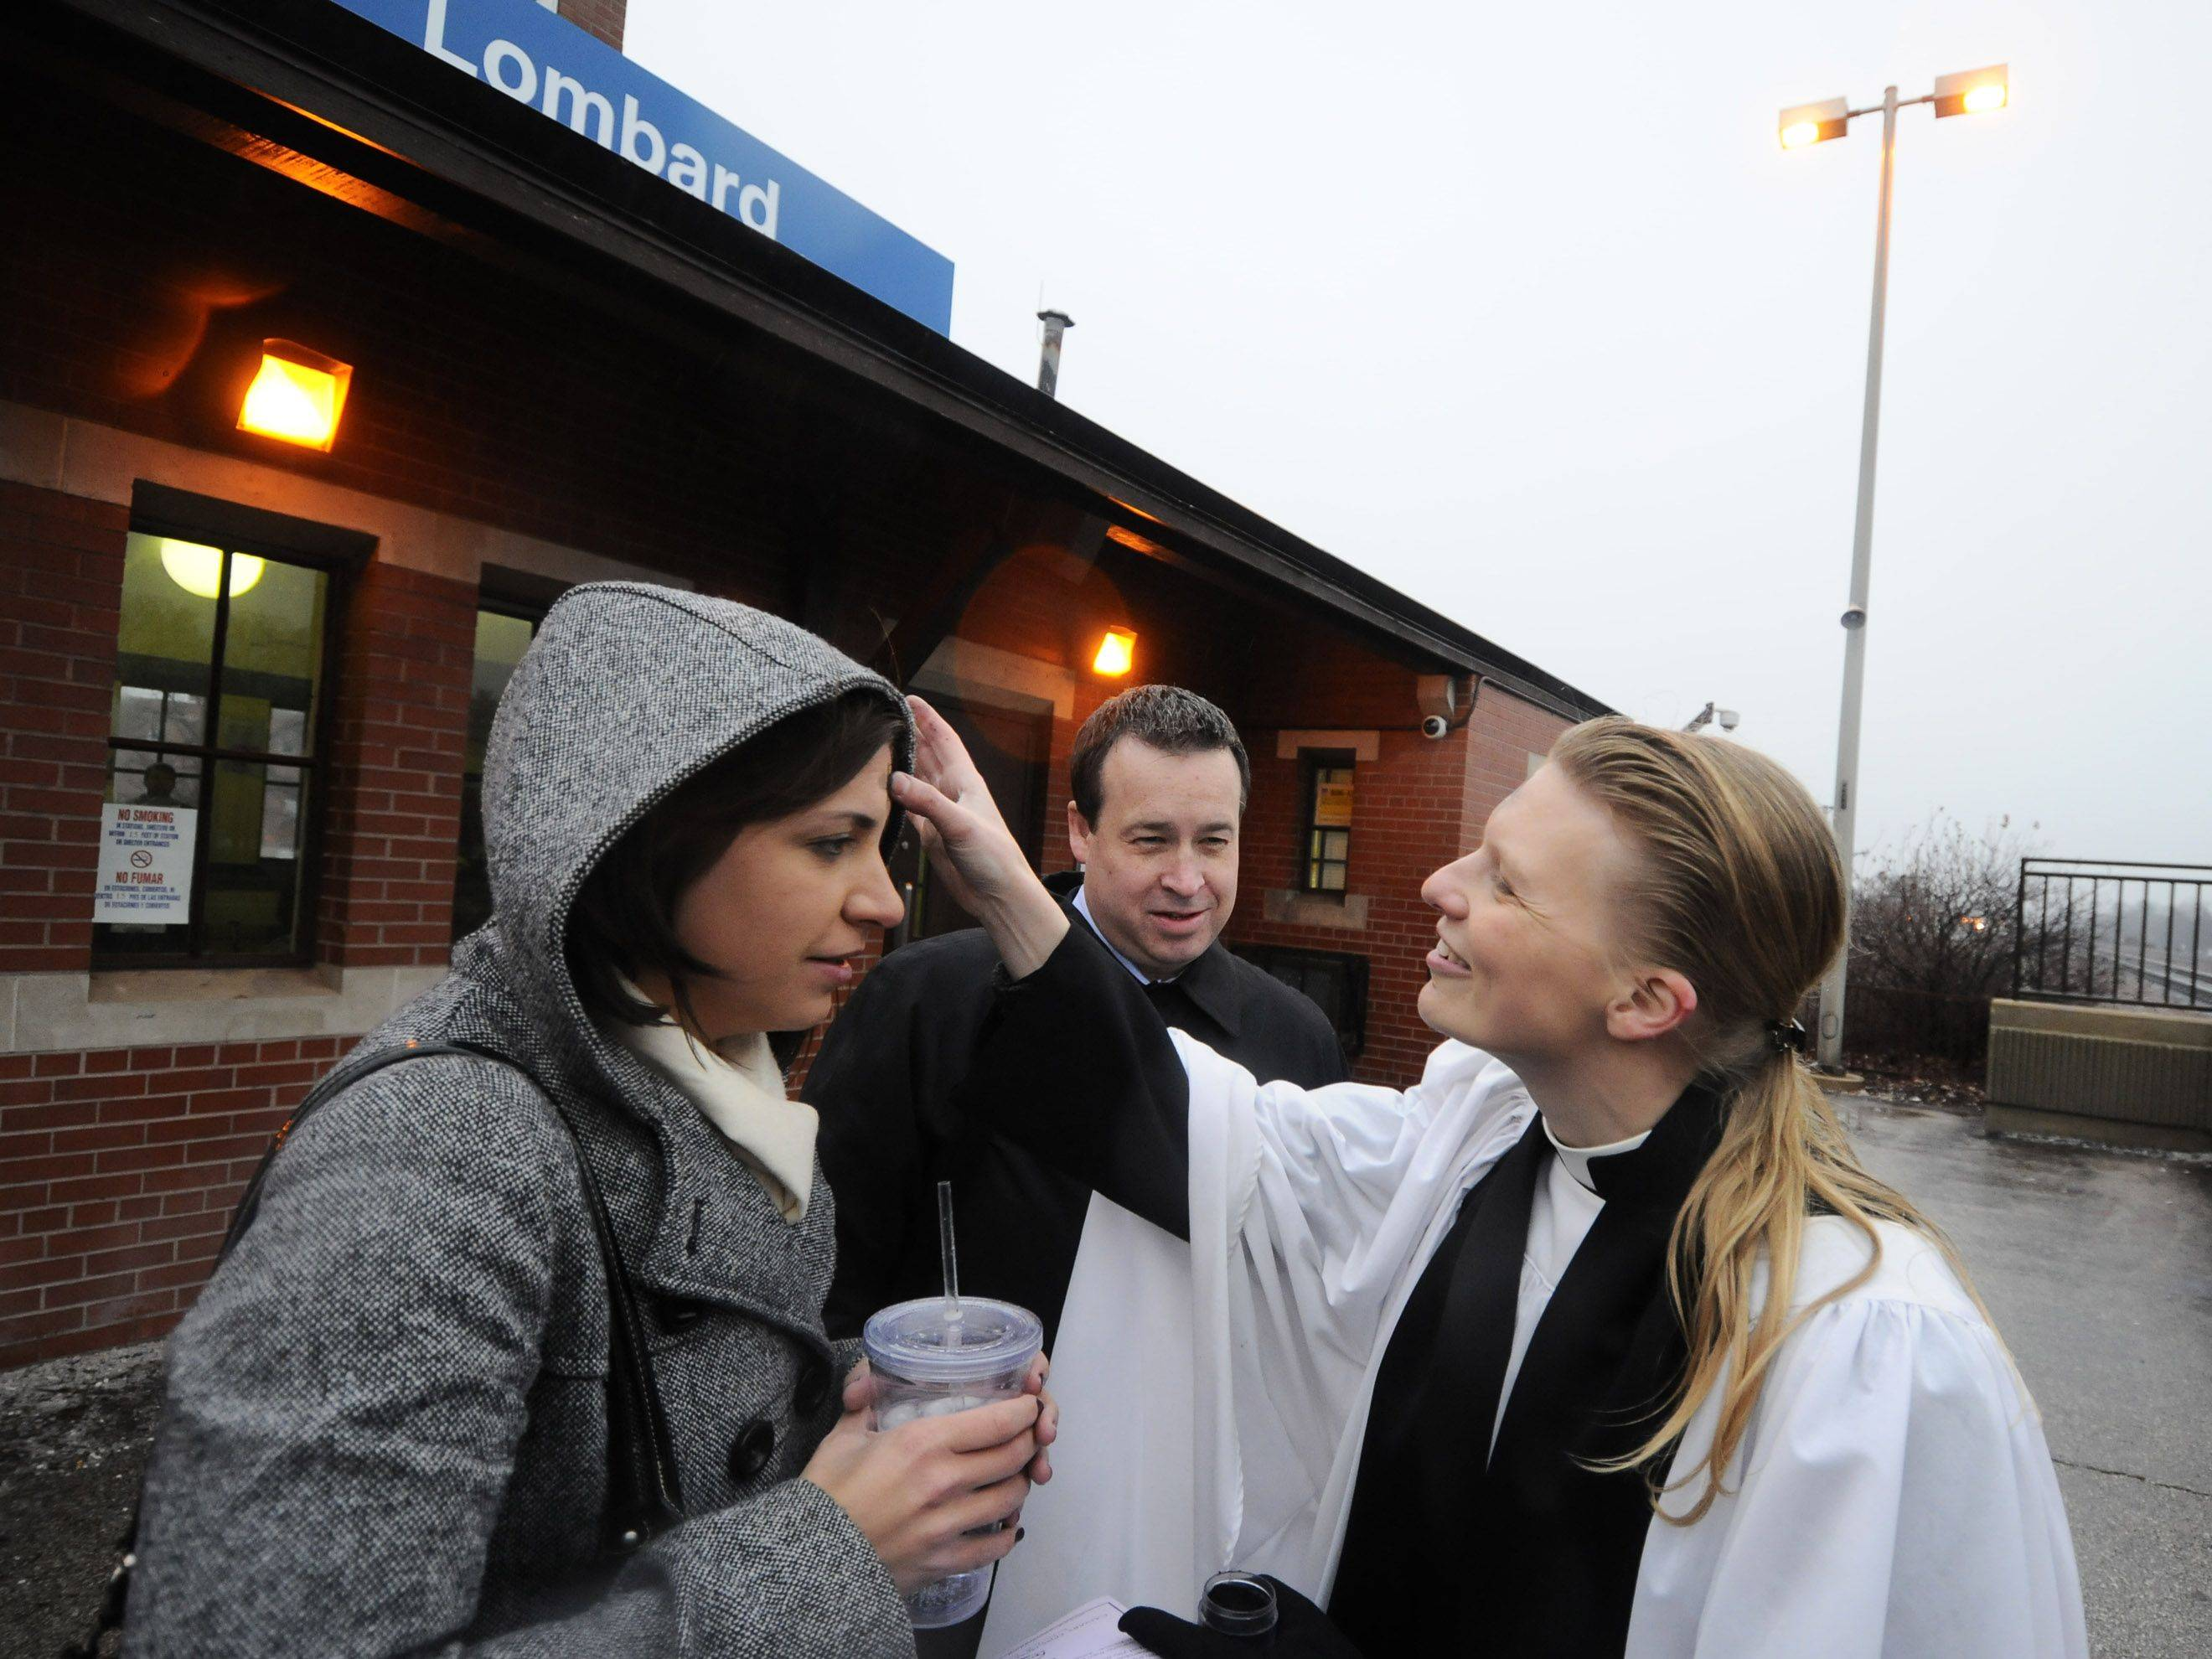 Kristin Krol, left, and Tom O'Hara, center, both from Lombard, receive ashes from Rev. Emily Mellot, right, before getting on their train Wednesday. A program offered by Calvary Episcopal Church in Lombard called Ashes To Go, brought ashes for Ash Wednesday to commuters Wednesday at Lombard's commuter station. Reverend Emily Mellott, pastor of Calvary Episcopal was on hand in vestments along with several other assistants to read a brief prayer and place ashes on the foreheads of any commuter who wished, and had time before dashing off to the trains.